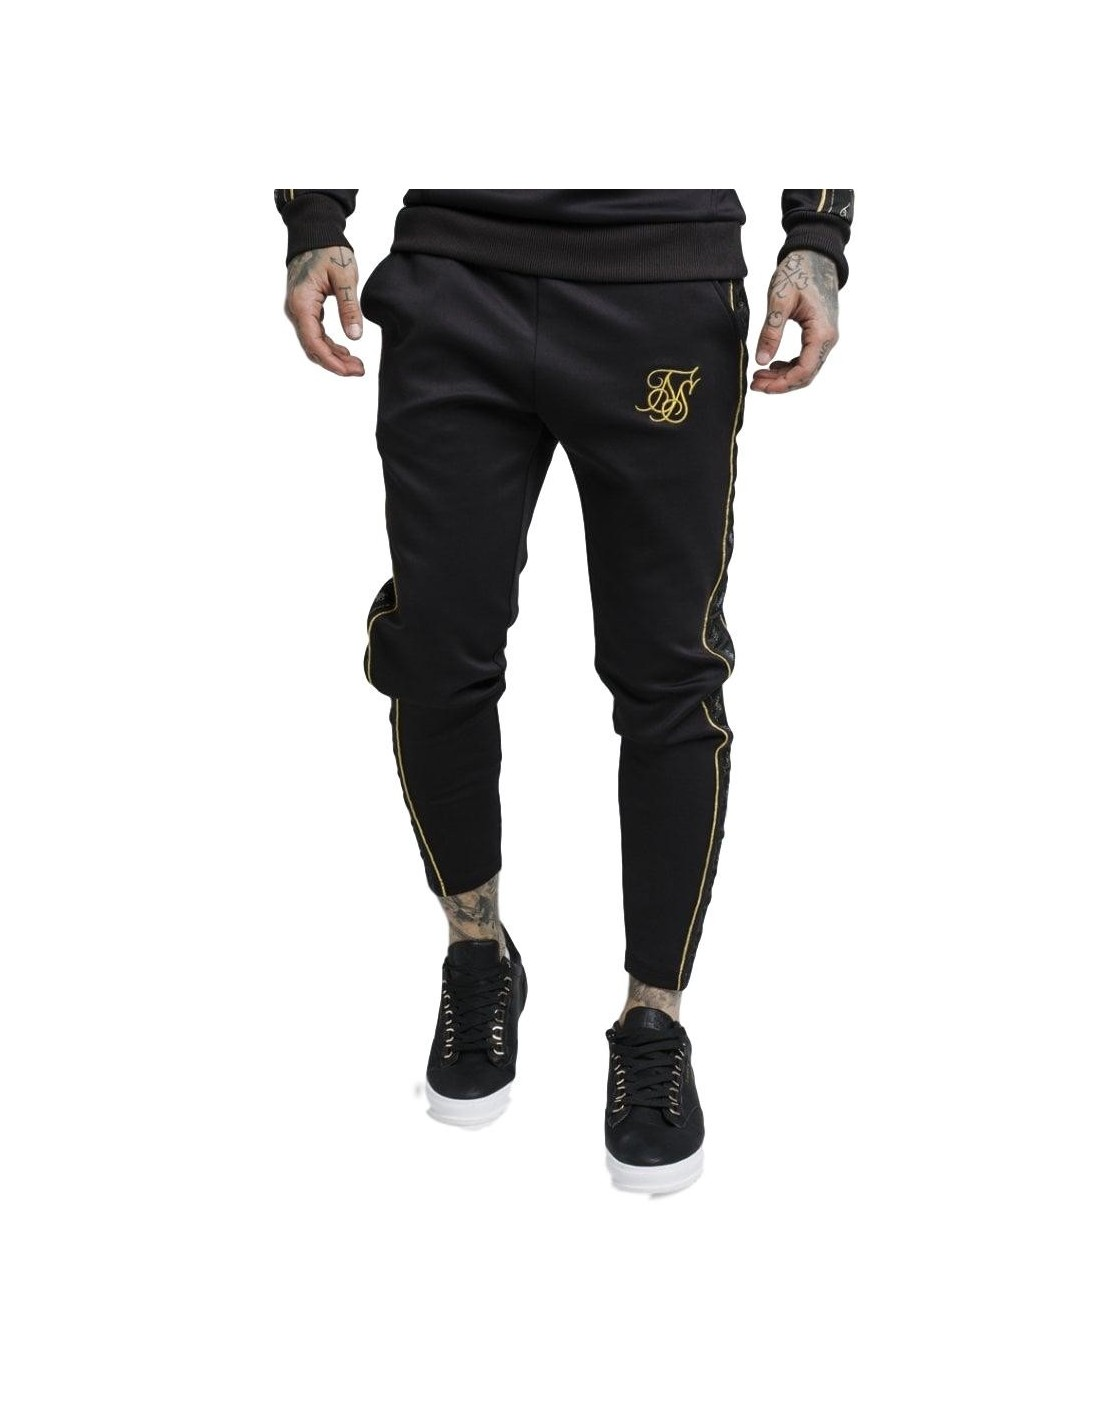 Jeans Gianni Kavanagh Abrasions Grey Scattered